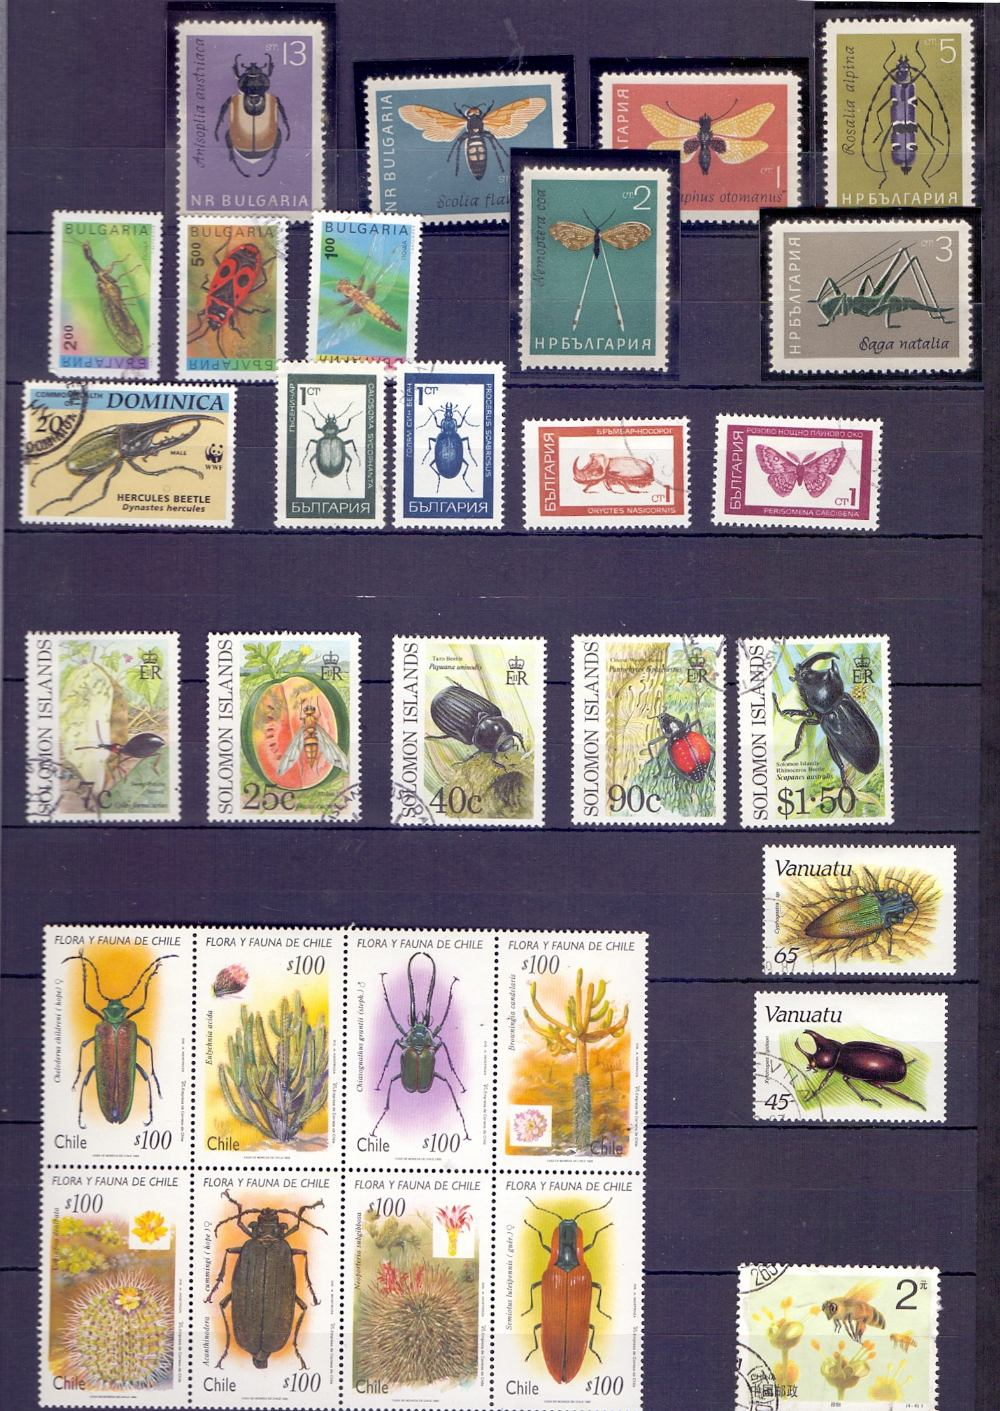 Lot 56 - STAMPS : Black stock-book of insects and butterflies thematic stamps